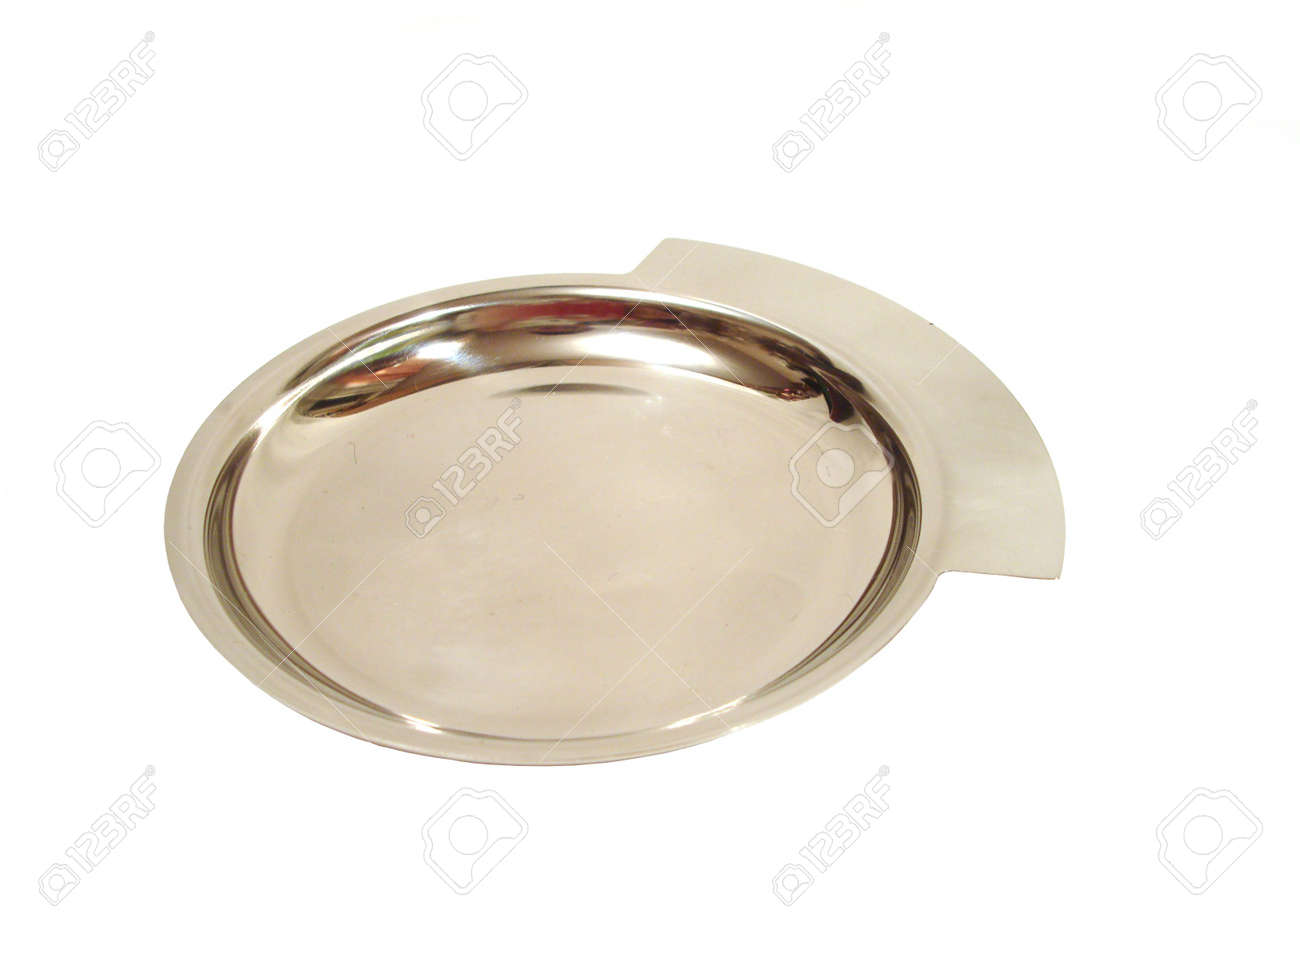 silver plate over white background Stock Photo - 736435